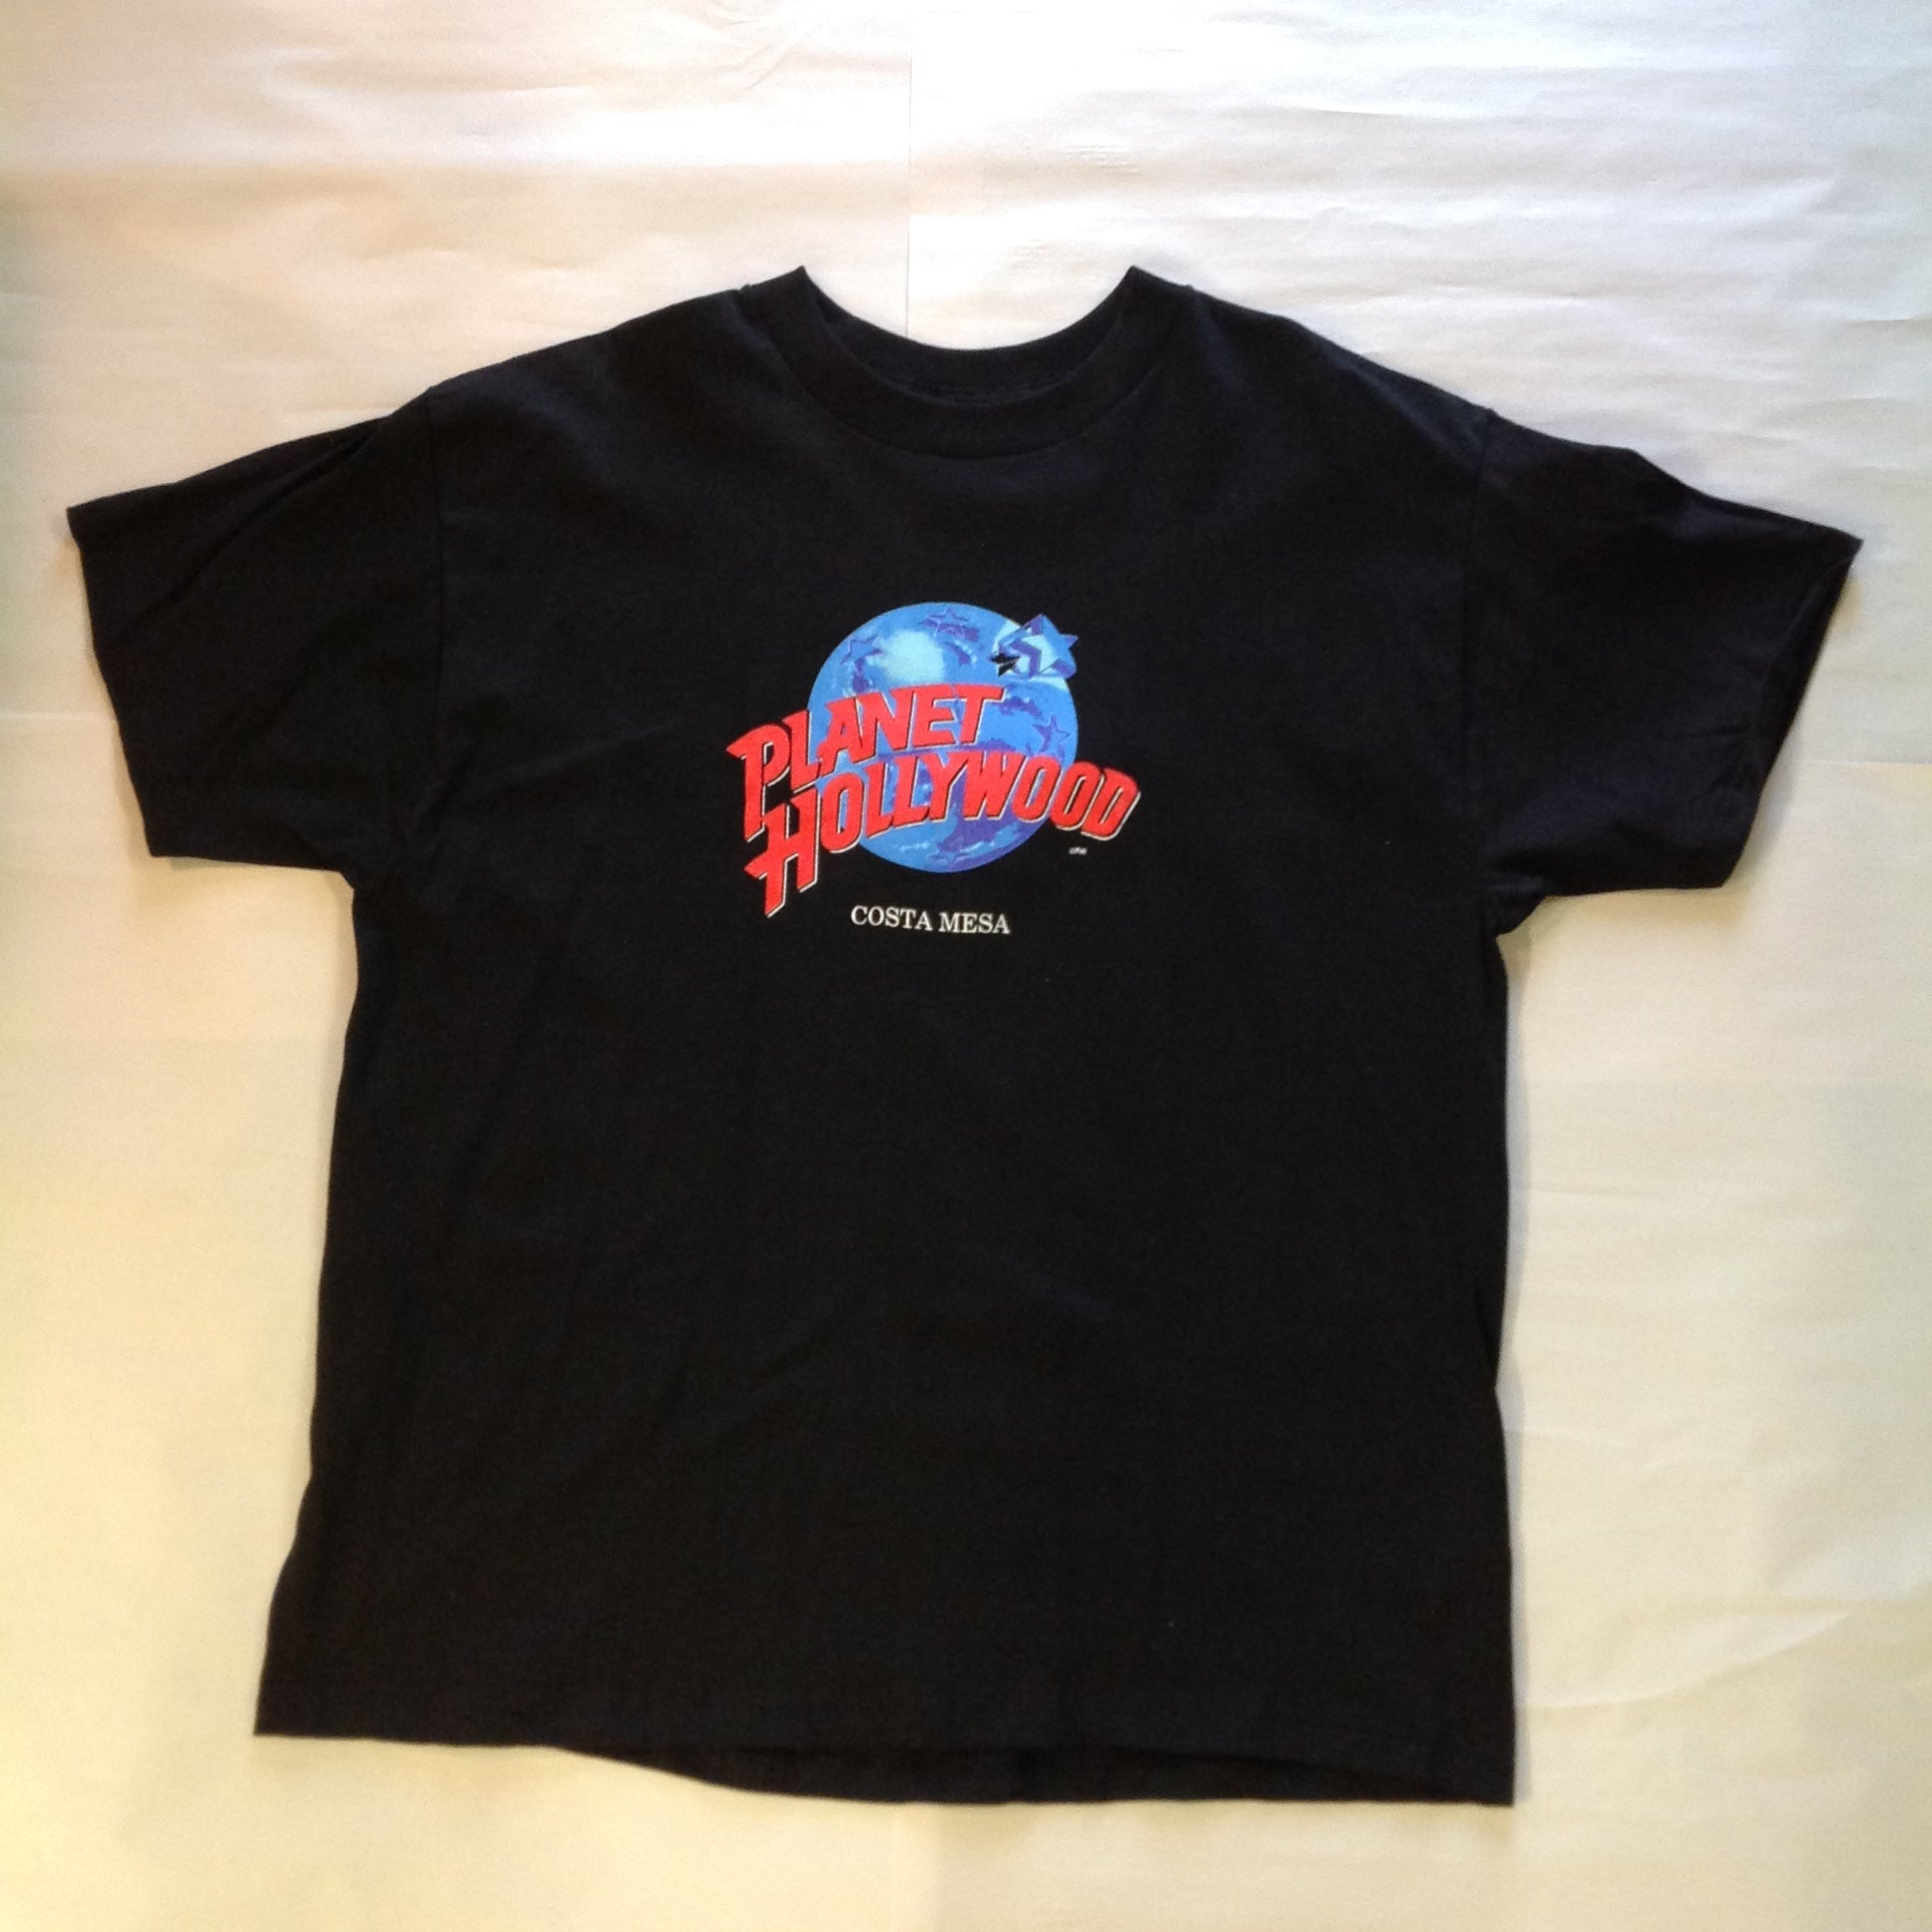 Authentic Souvenir Men's XL Black Short Sleeve Cotton Planet Hollywood Costa Mesa T-Shirt